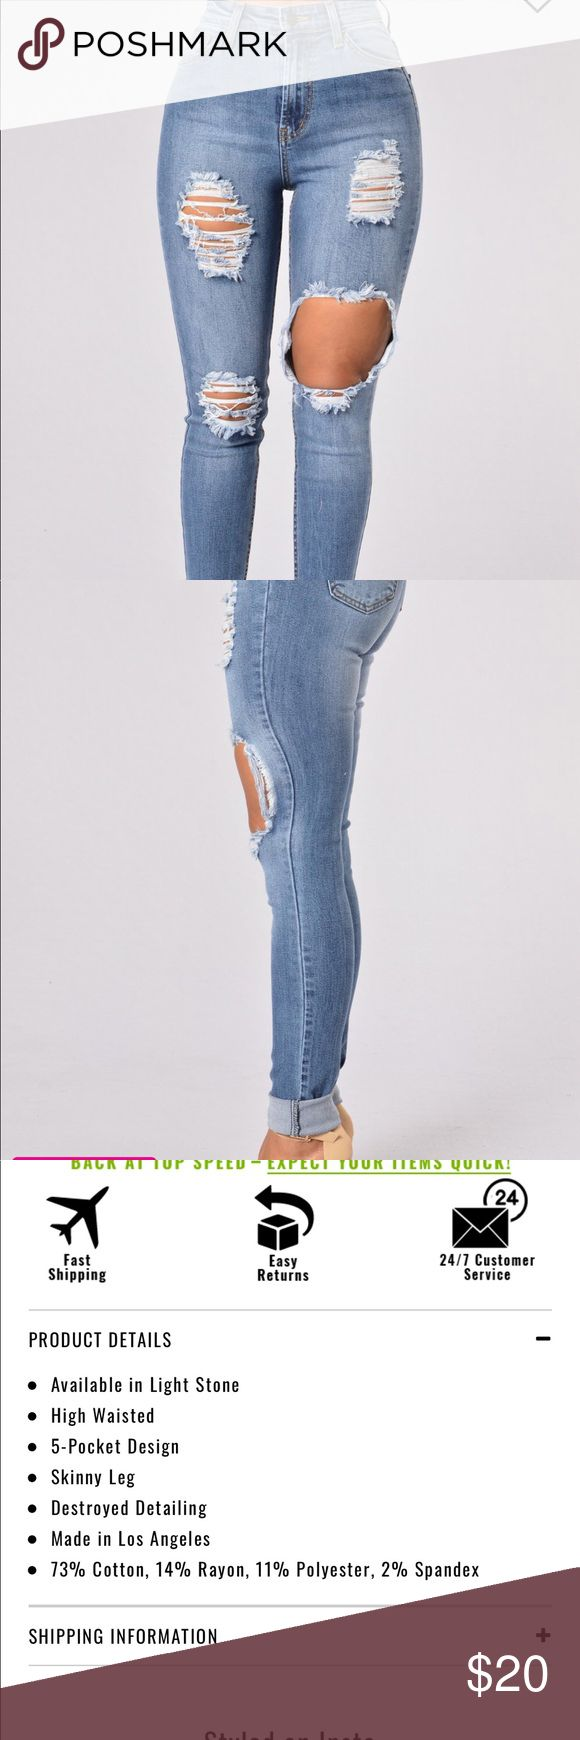 NEW Fashion Nova Plus Size Jeans Brand new never worn. 2X is 18 on the website. True to size or smaller can fit Fashion Nova Jeans Skinny